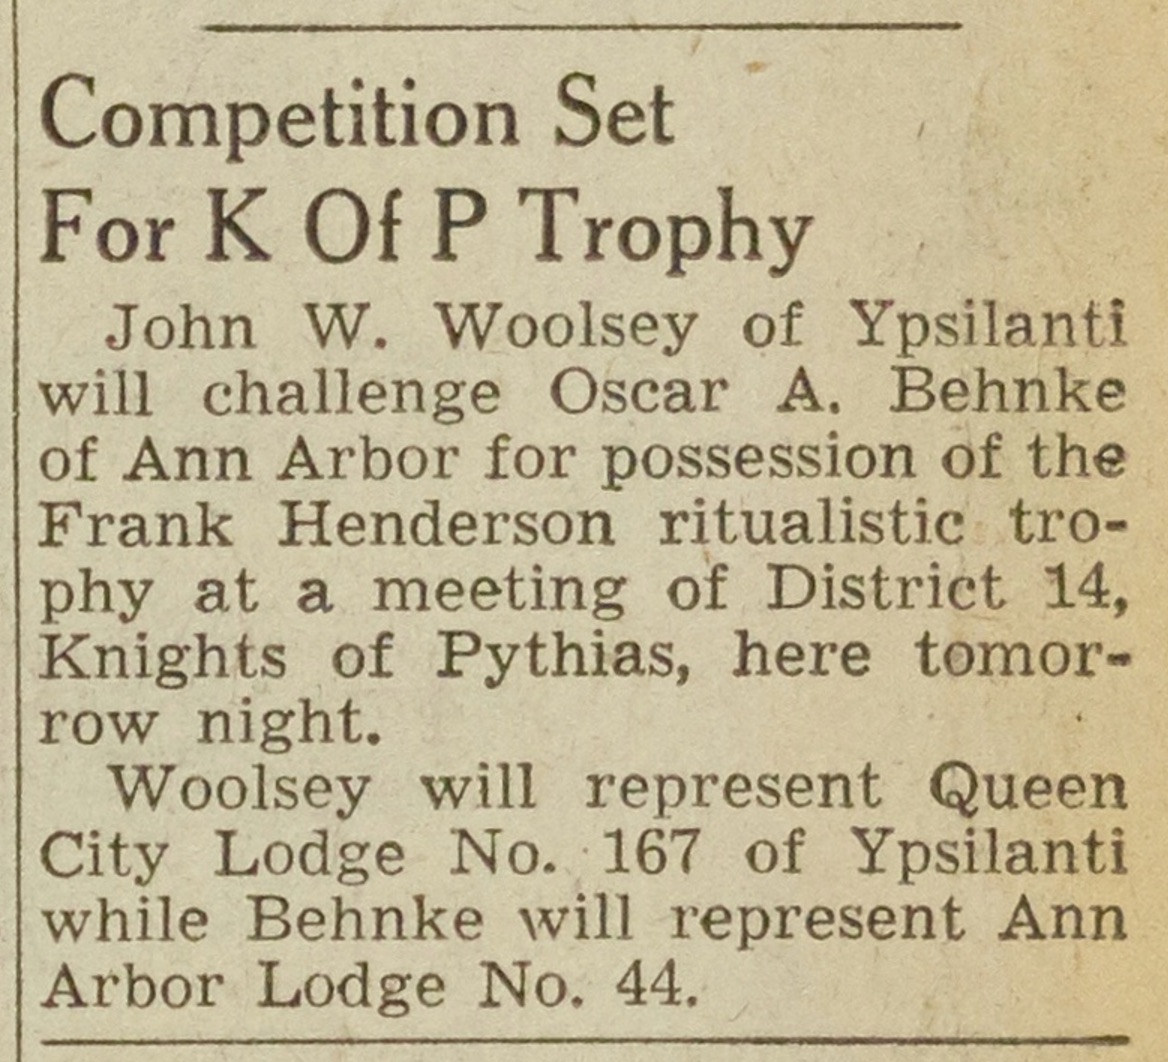 Competition Set For K Of P Trophy image